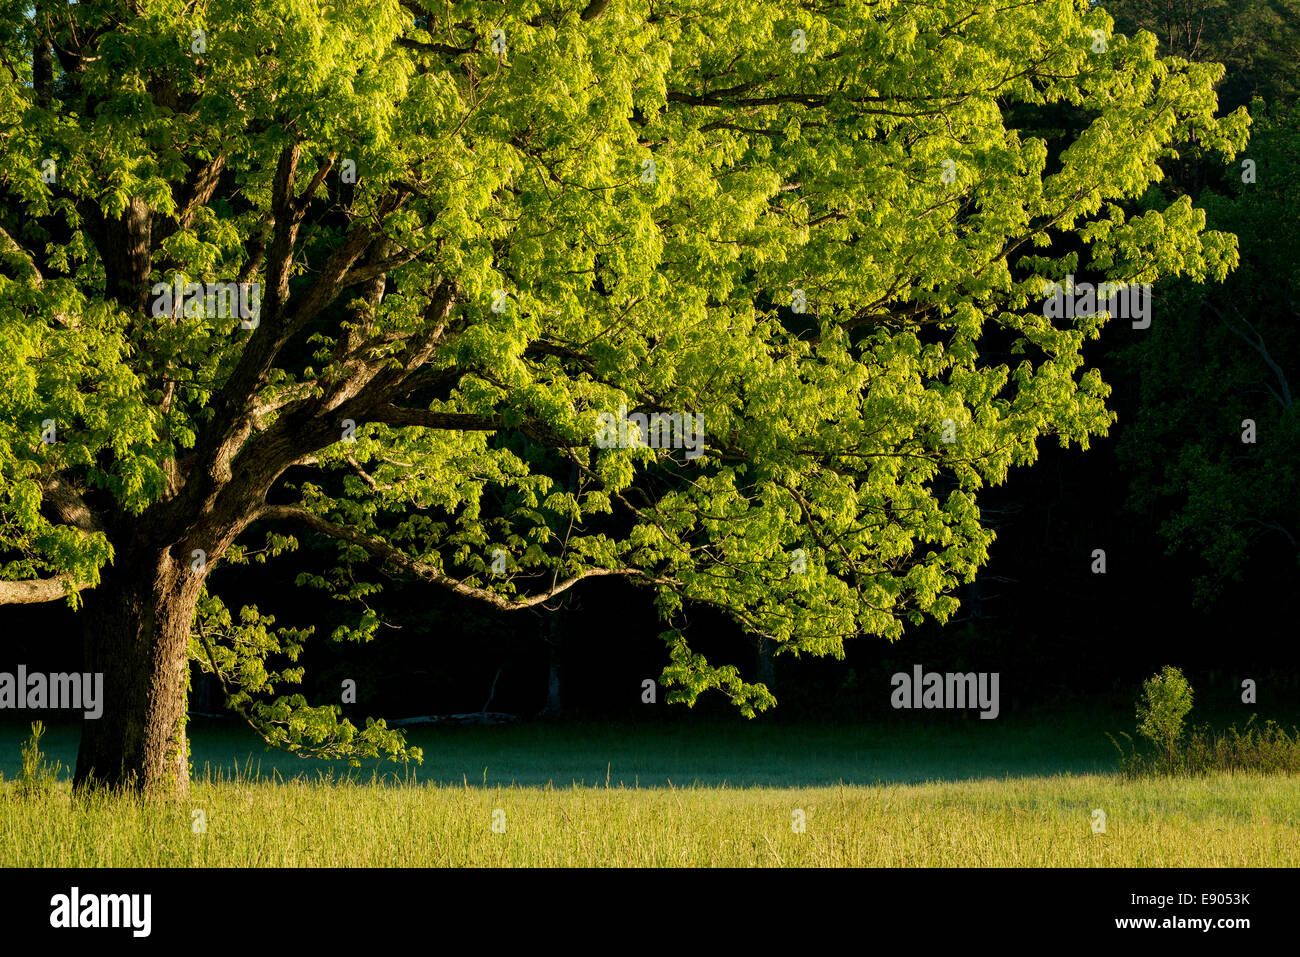 Tree, early morning Cade's Cove, Great Smoky Mountain National Park, Tennessee, USA   Dembinsky Photo - Stock Image